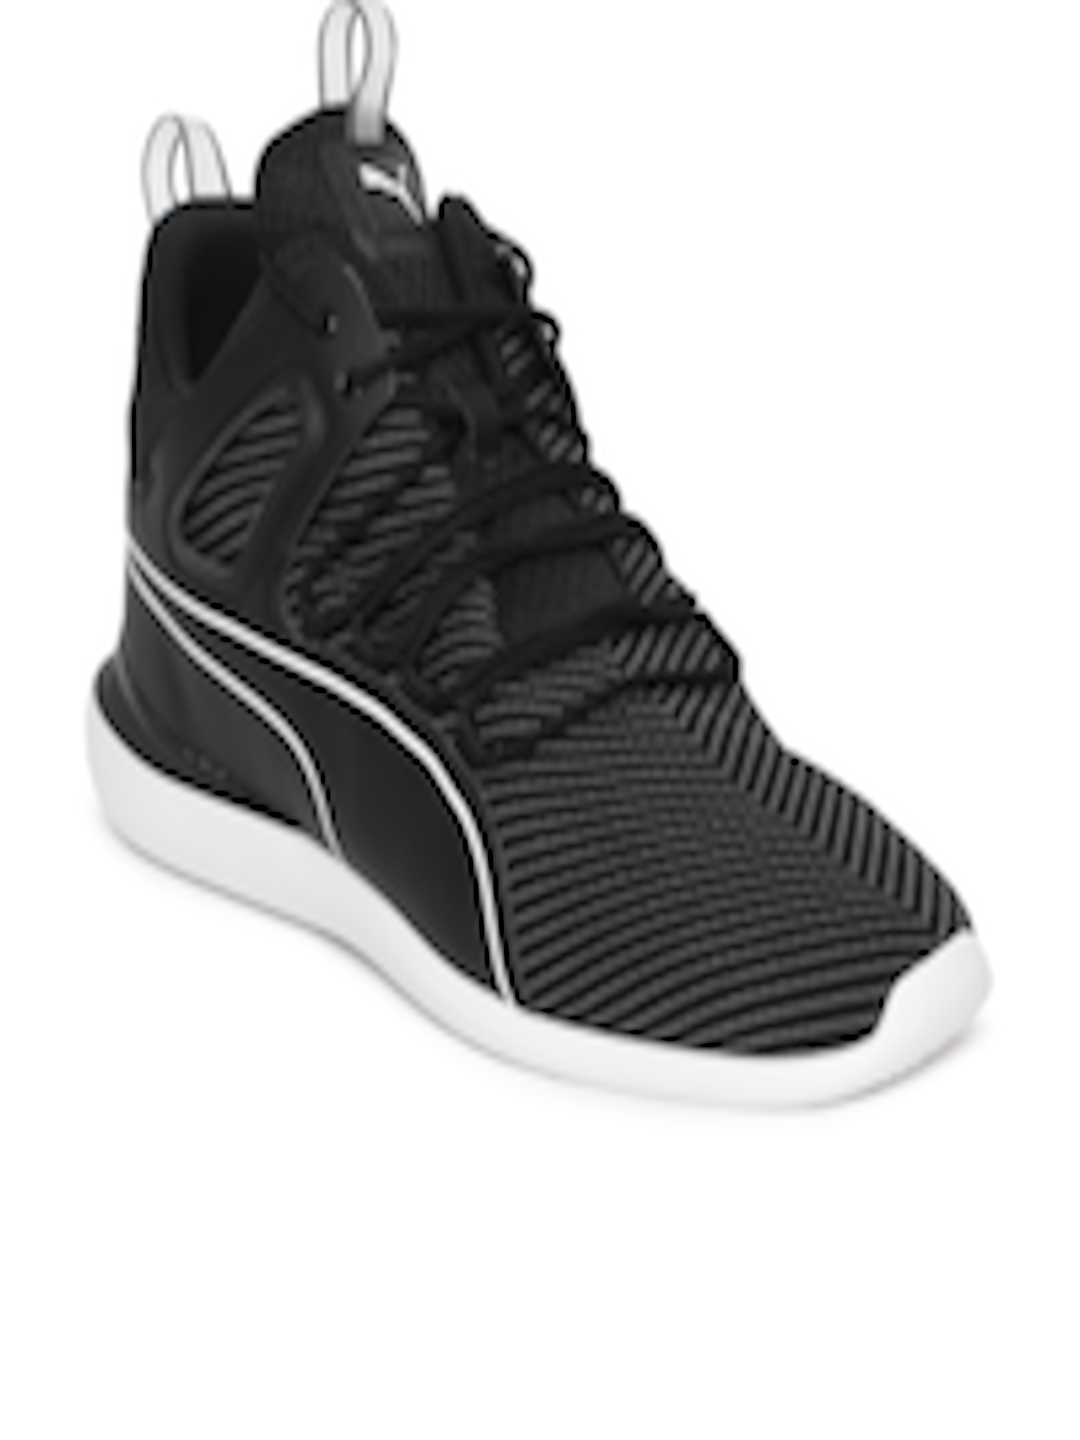 Buy Puma Men Black Scuderia Ferrari Evo Cat Sneakers - Casual Shoes for Men  6697425  5f9bc5a90